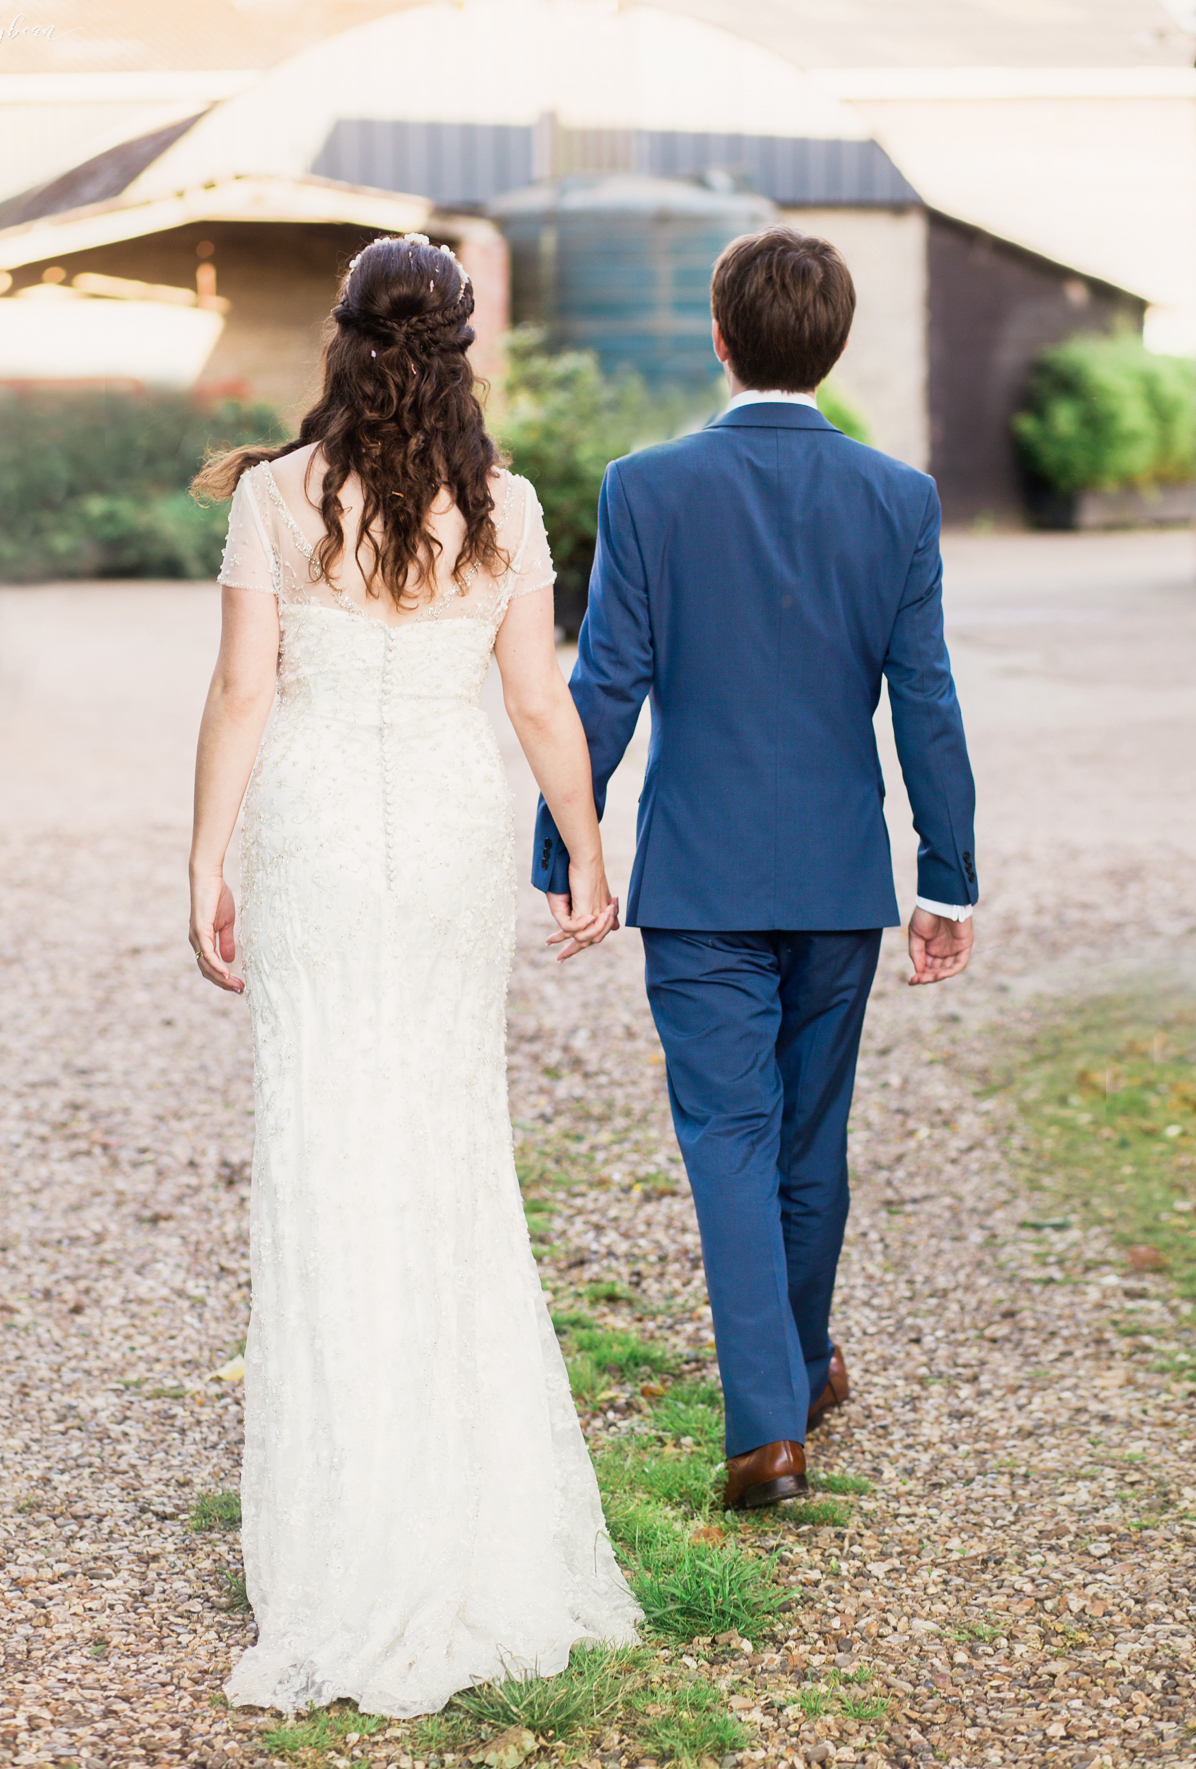 Beautiful back shot of Bride & Groom